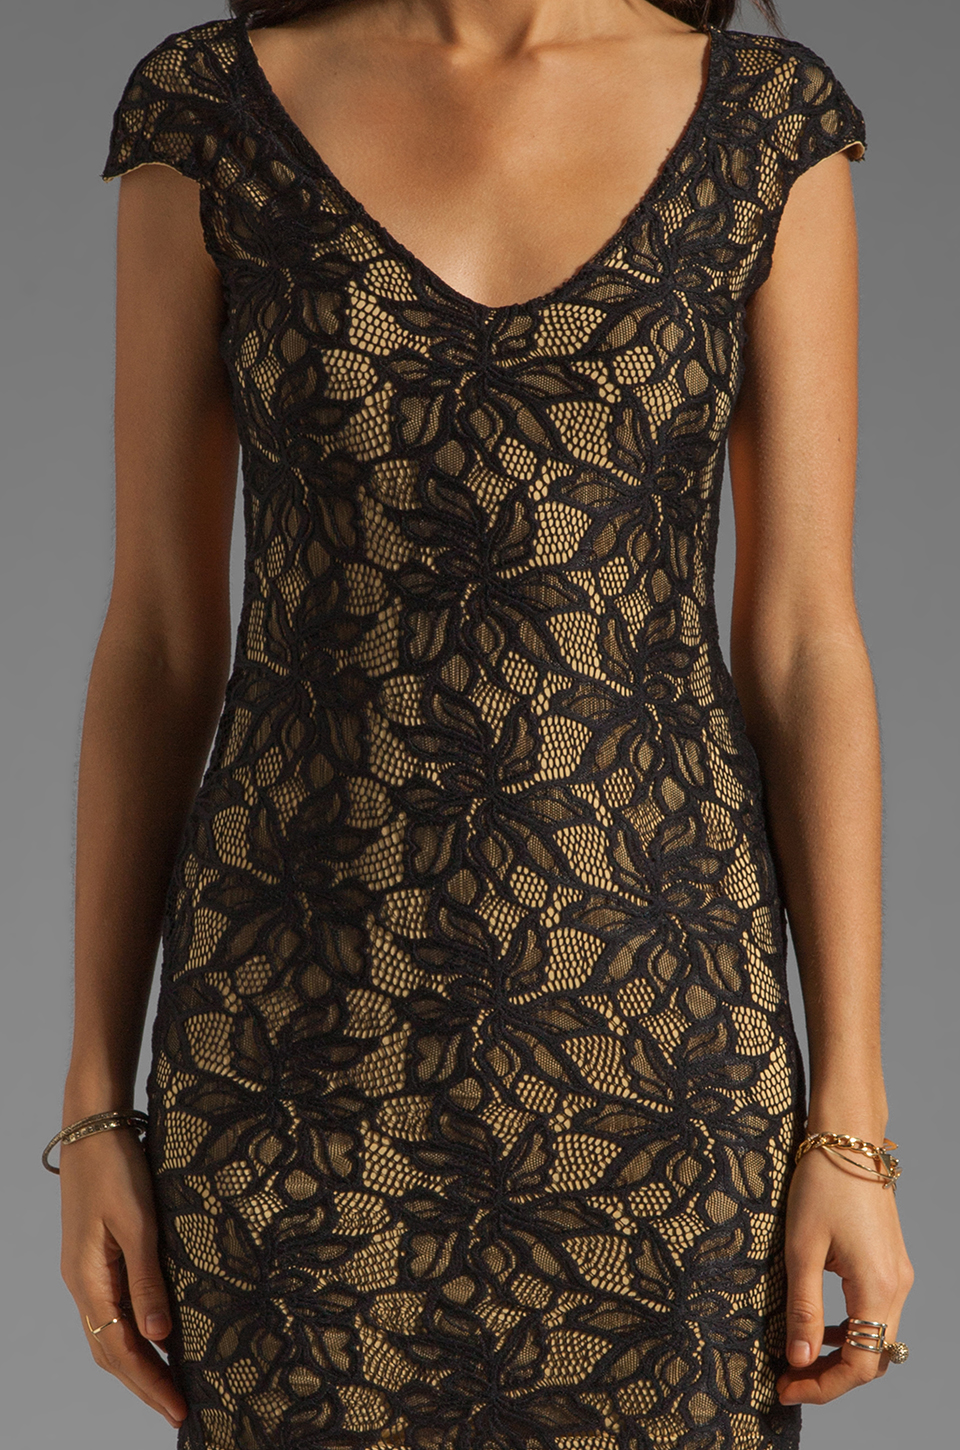 Lovers + Friends Bahama Mama Dress in Black Lace